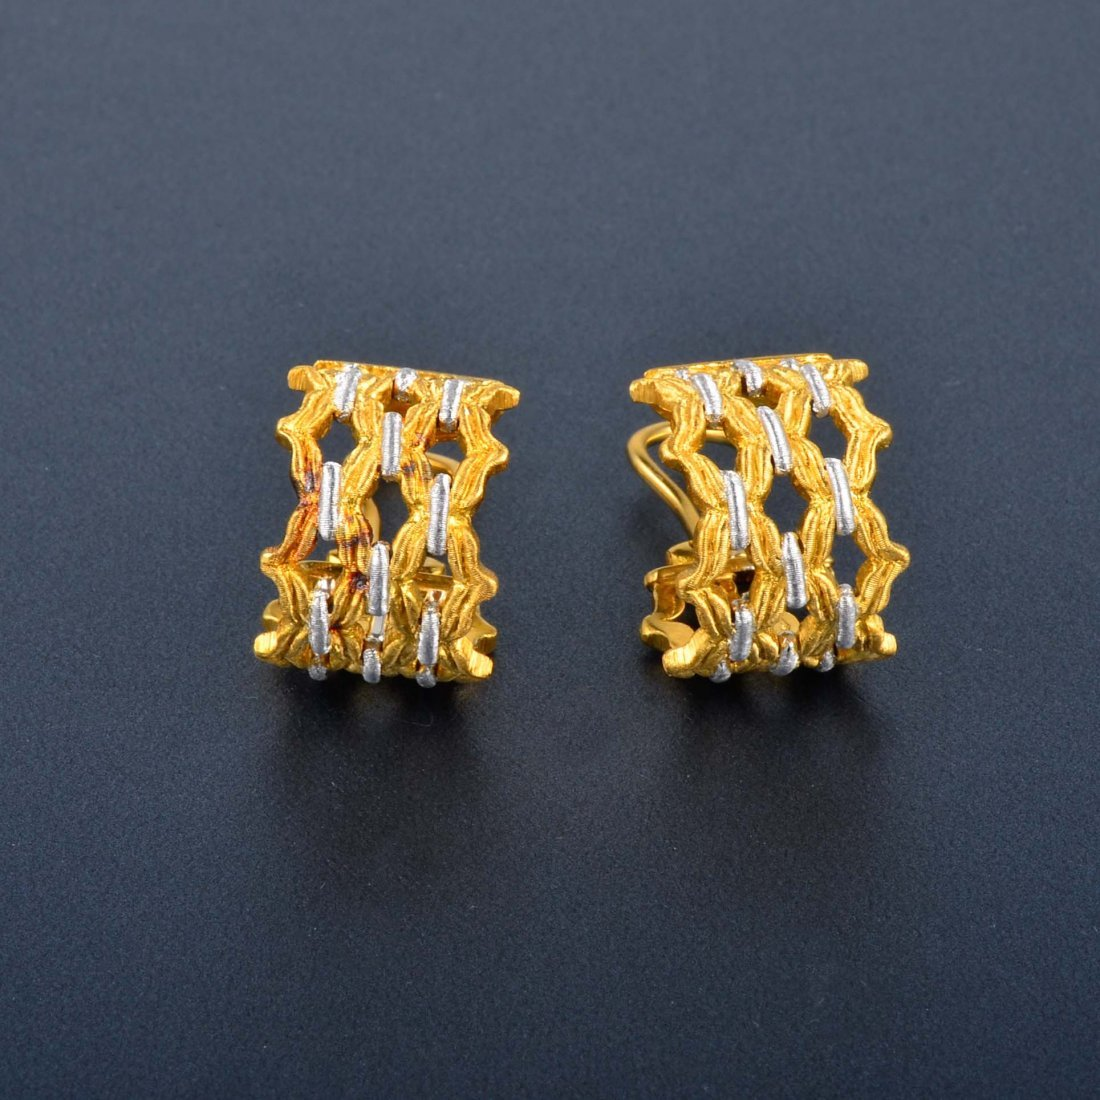 10: Buccellati 2-tone Earrings